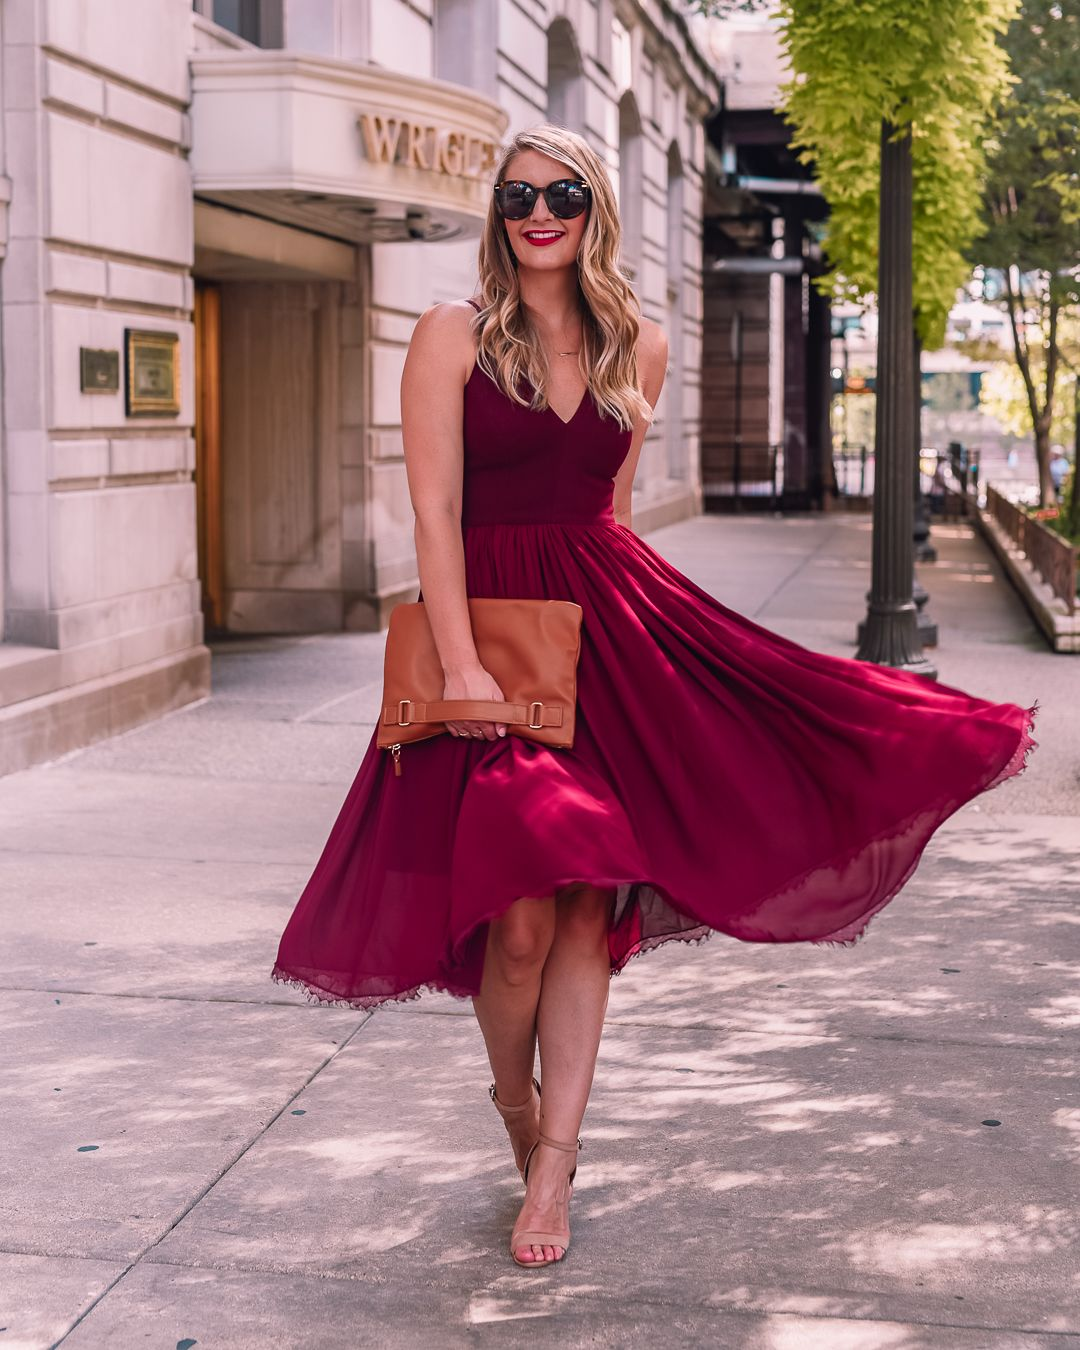 The Best Fall Wedding Guest Dresses Visions Of Vogue Wedding Guest Dress Fall Wedding Guest Dress Best Wedding Guest Dresses [ 1350 x 1080 Pixel ]